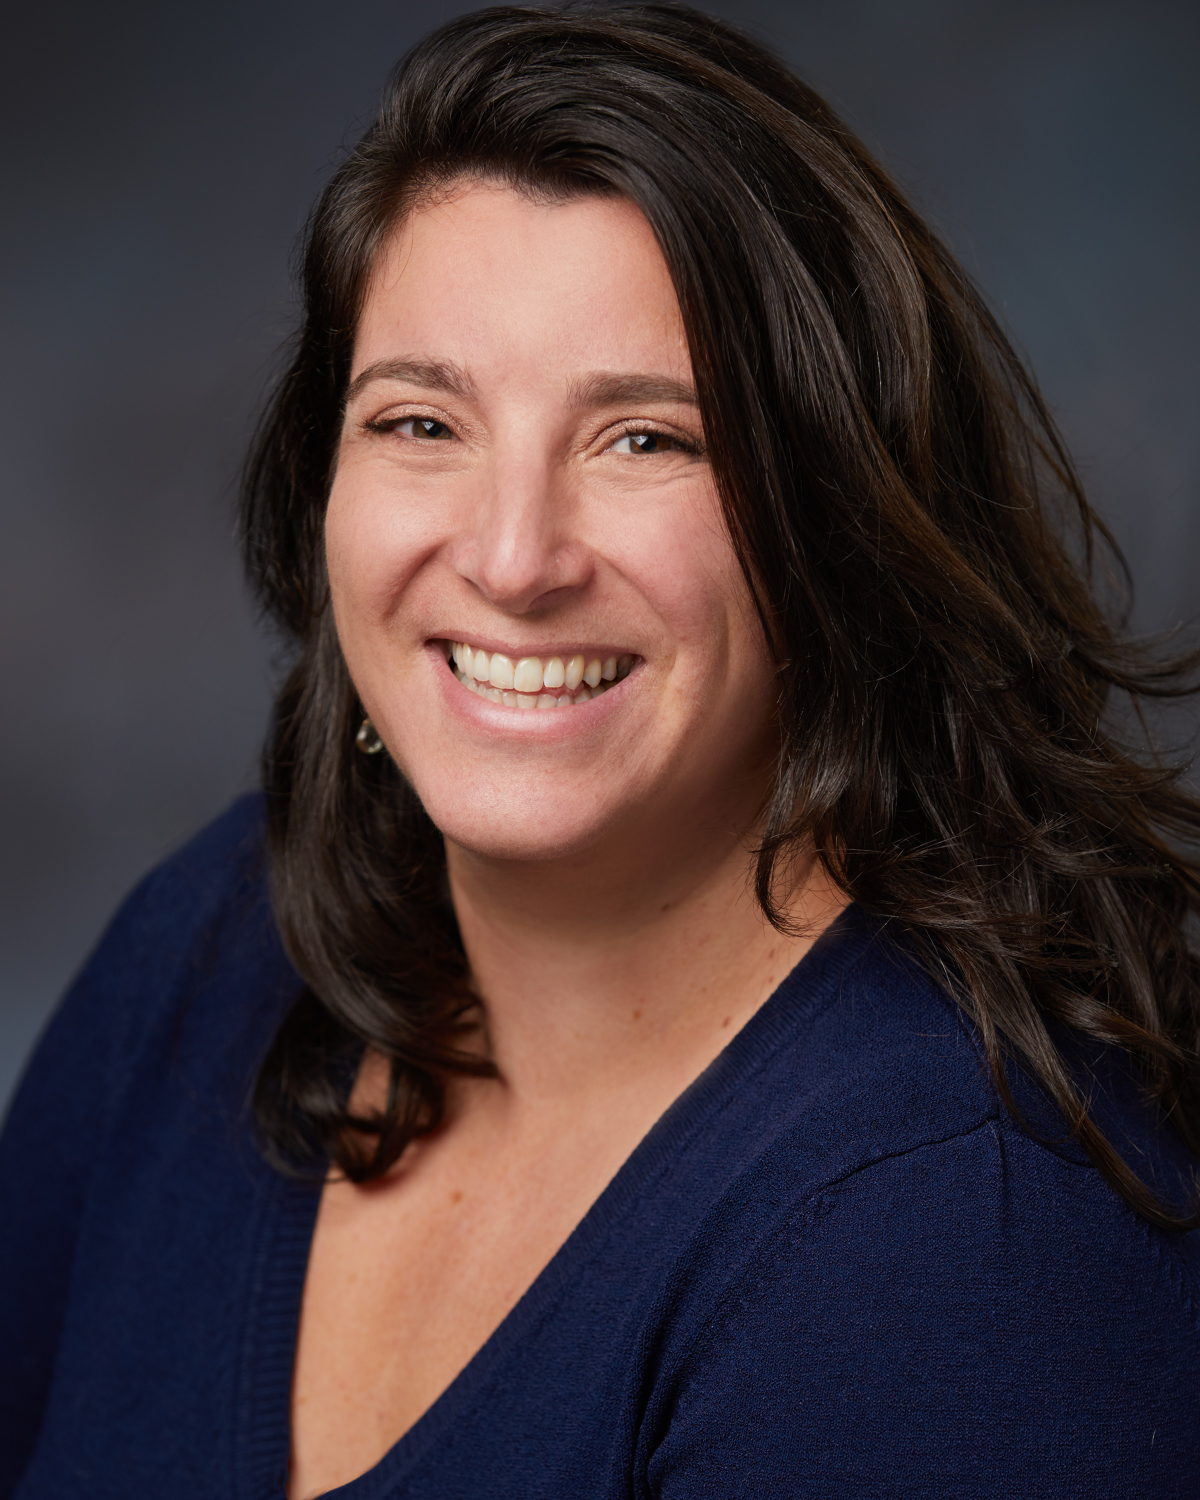 Katie Grinnell, CNM, MS - Nurse-Midwife in Oregon City, OR